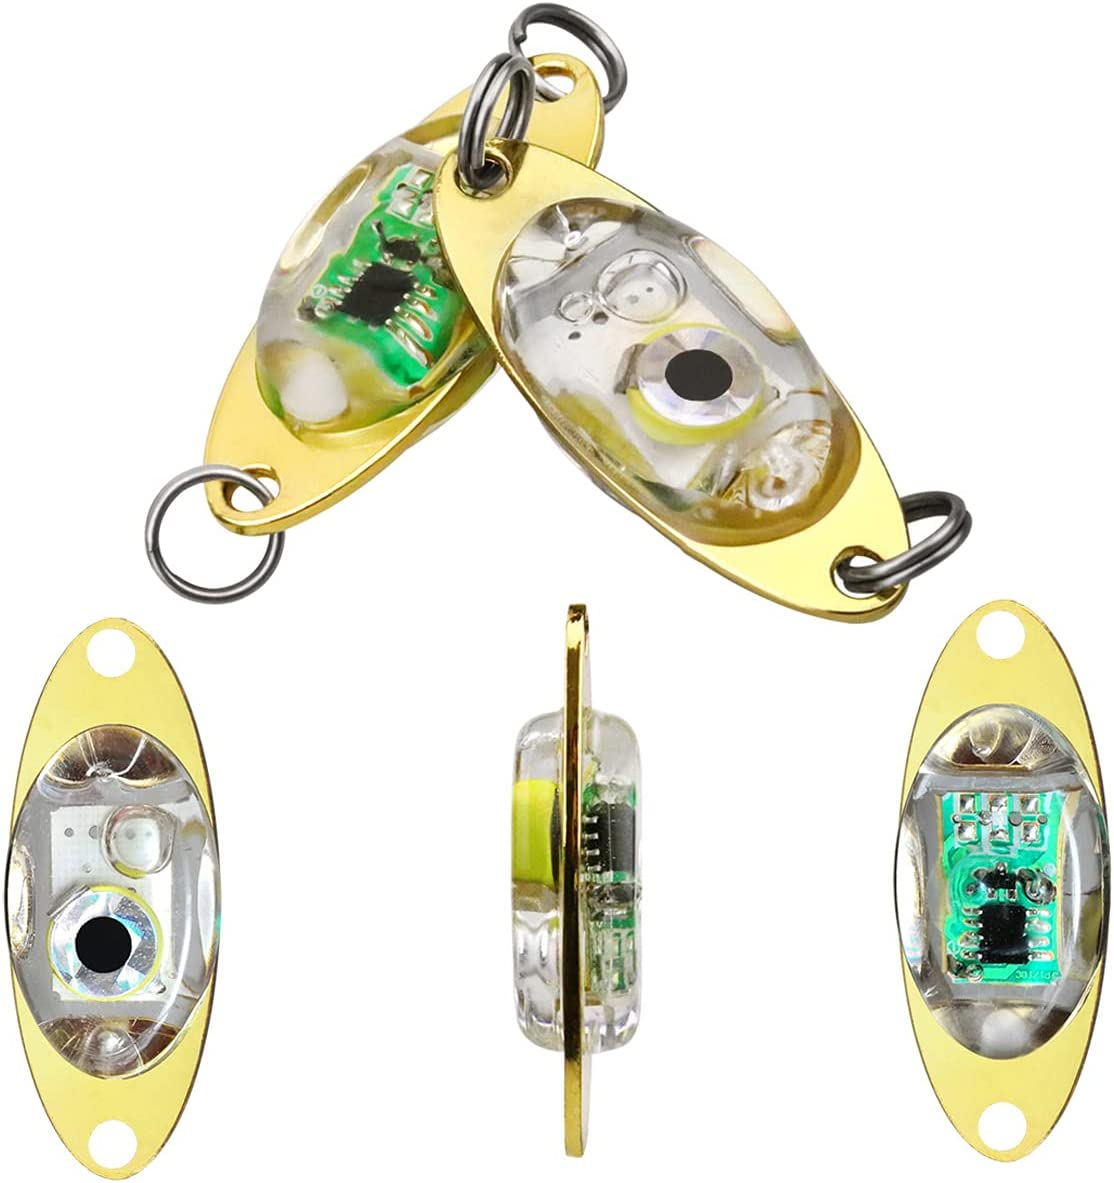 RTNLIT Lighted Fishing Lures National products Now on sale Kit Water-Trigger Deep Lights Drop